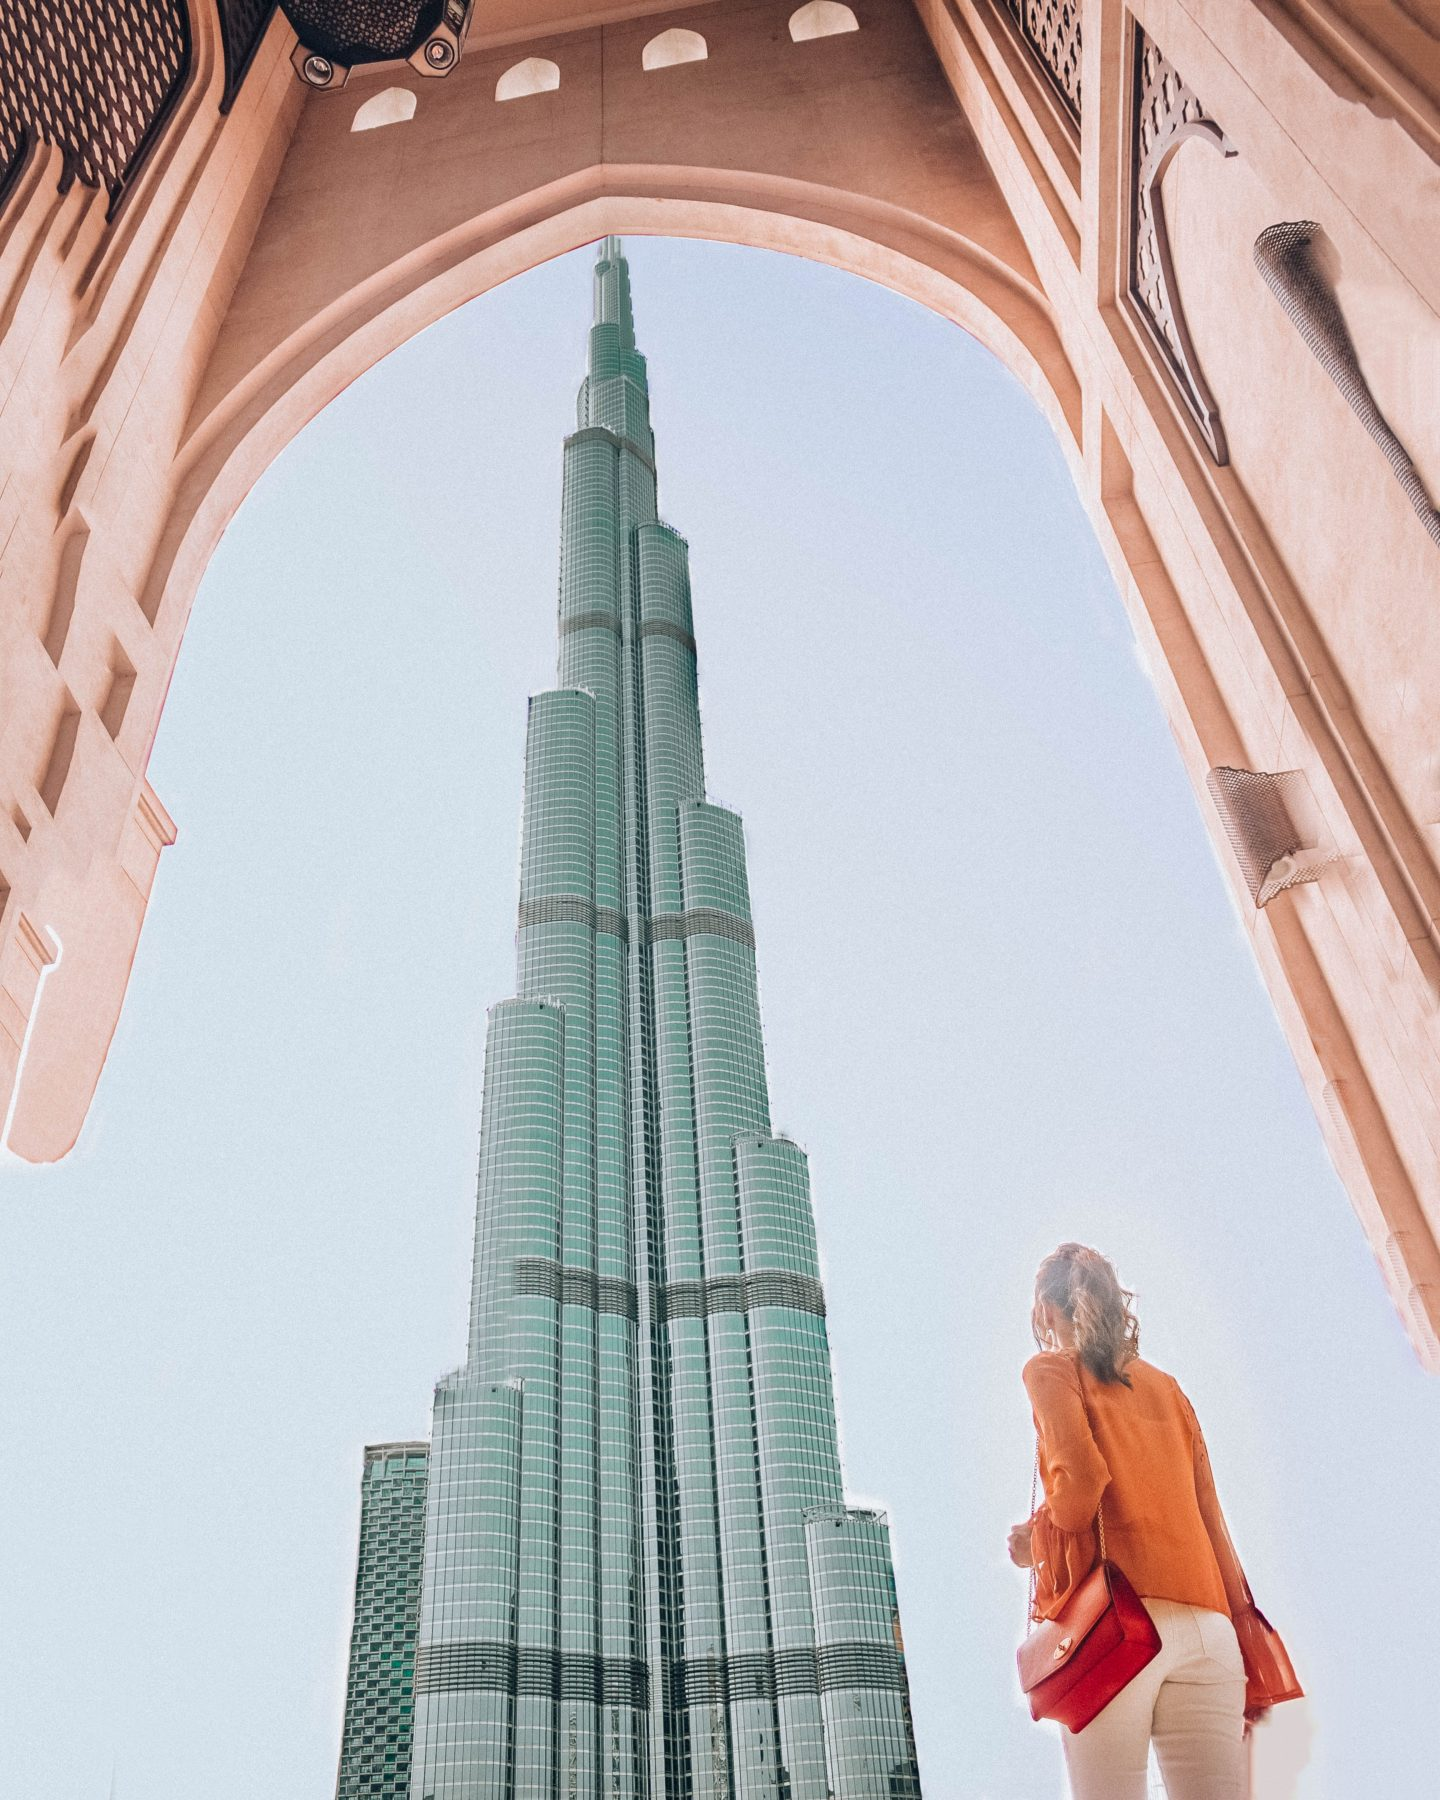 5 Of The Most Unique Things To Do In Dubai